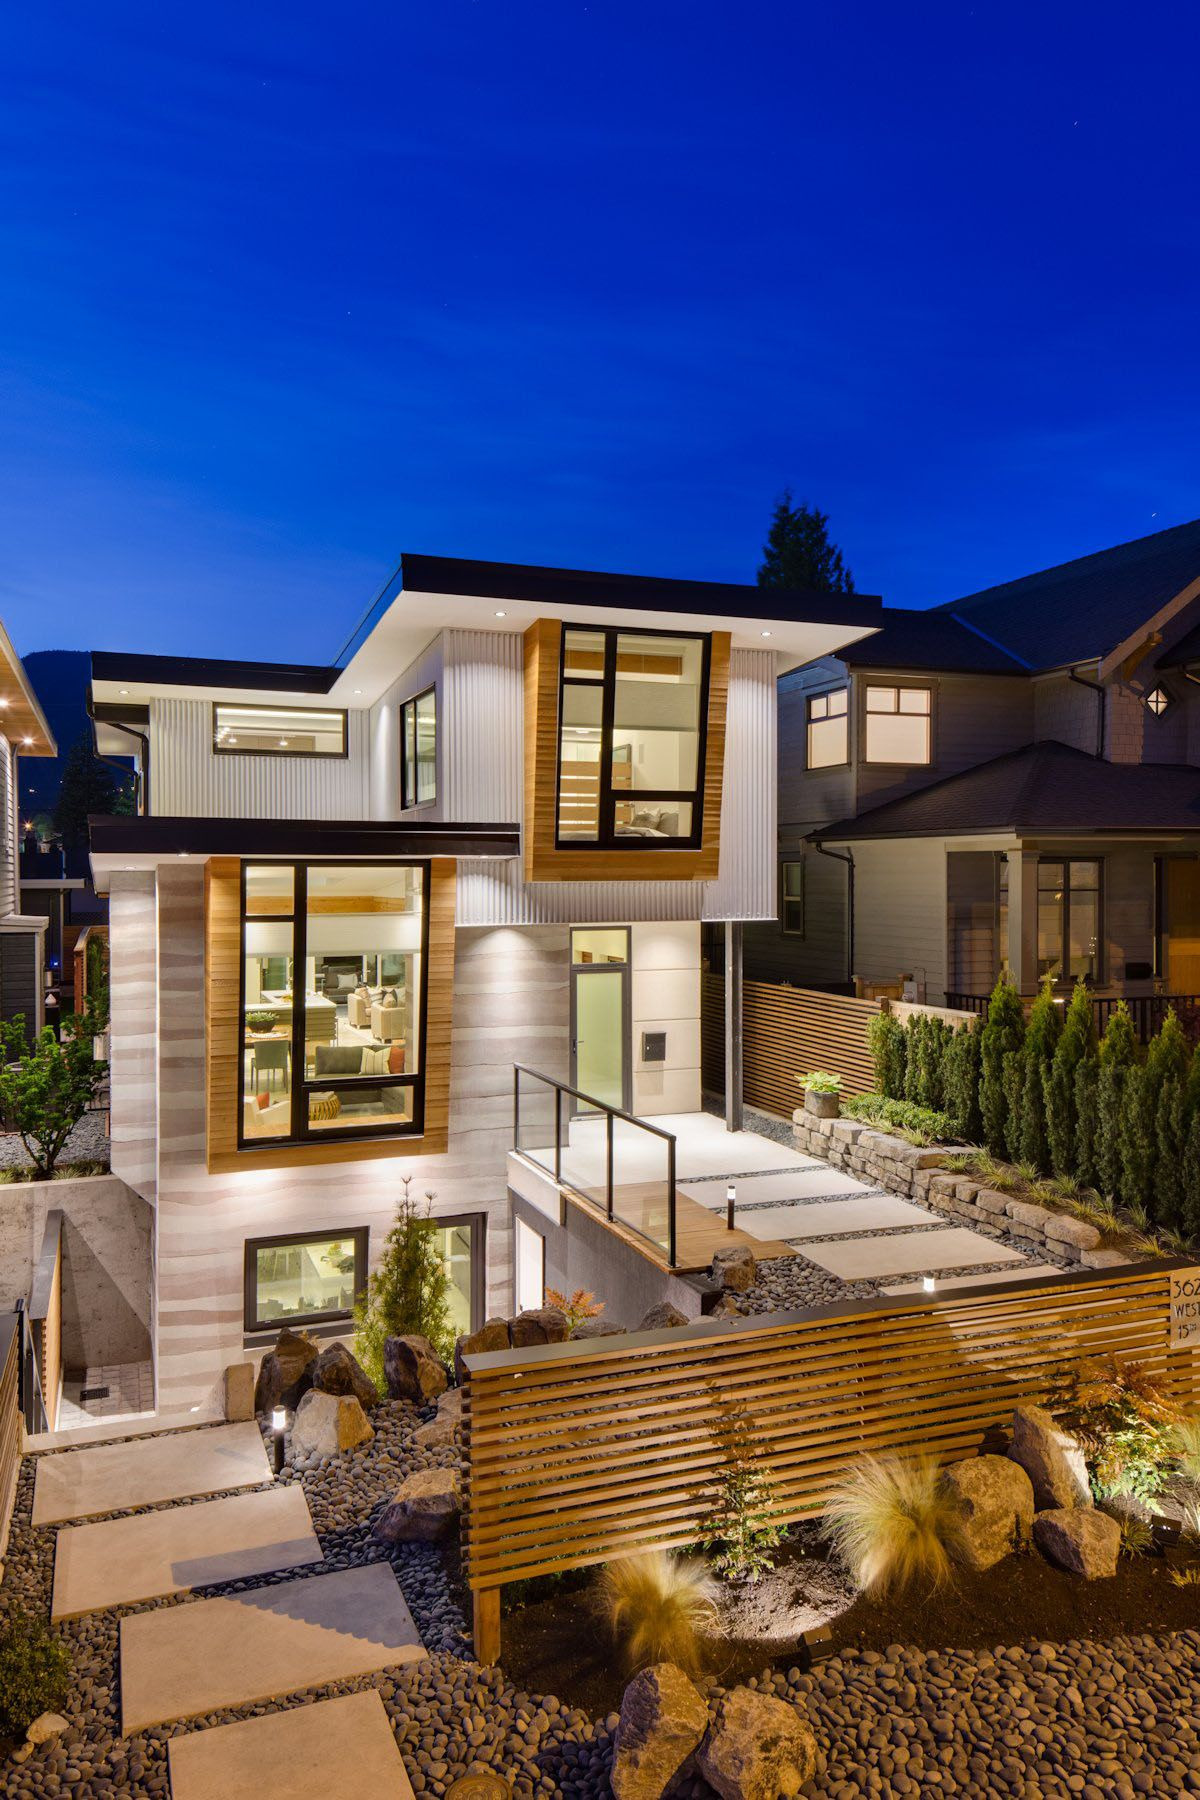 Award Winning Modern Homes Luxury 10 Unique Ways to Green Your Outdoor Eco Friendly Home